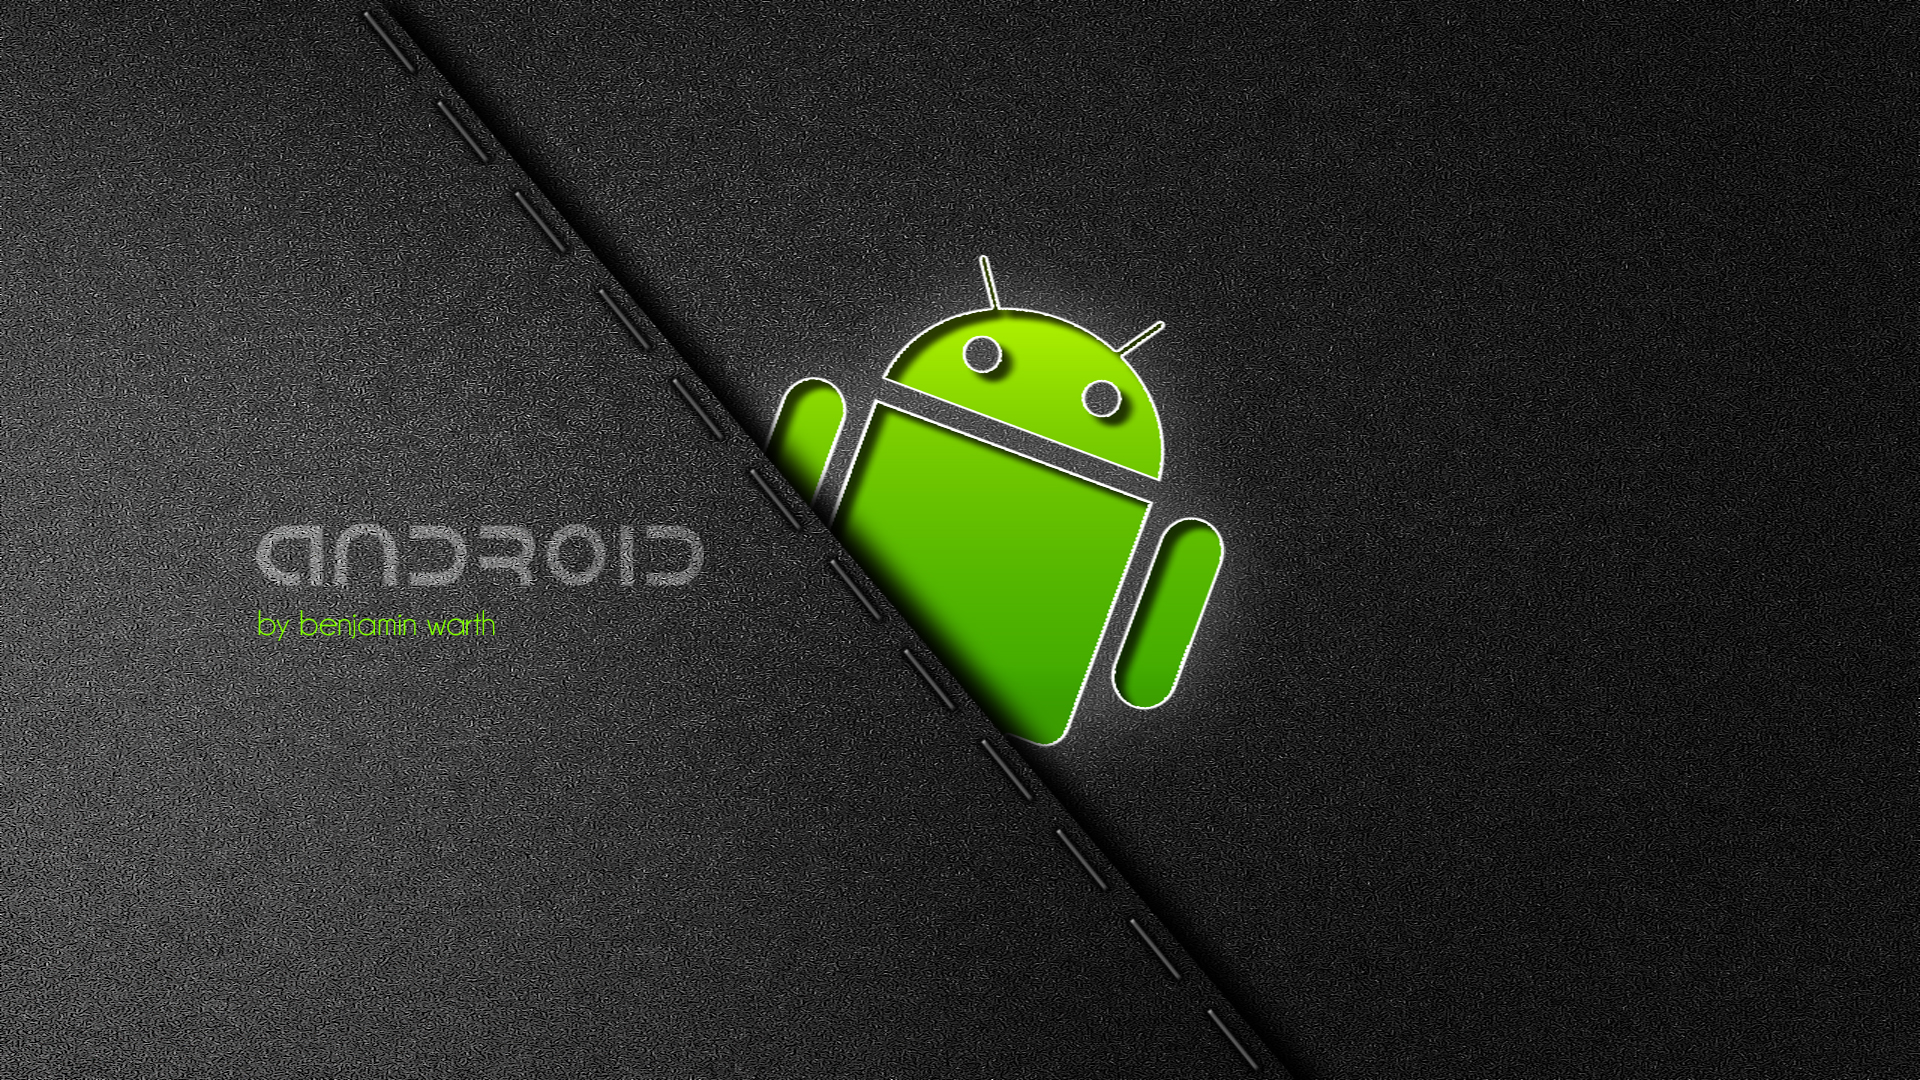 Android High Resolution In HD Wallpaper Free Download